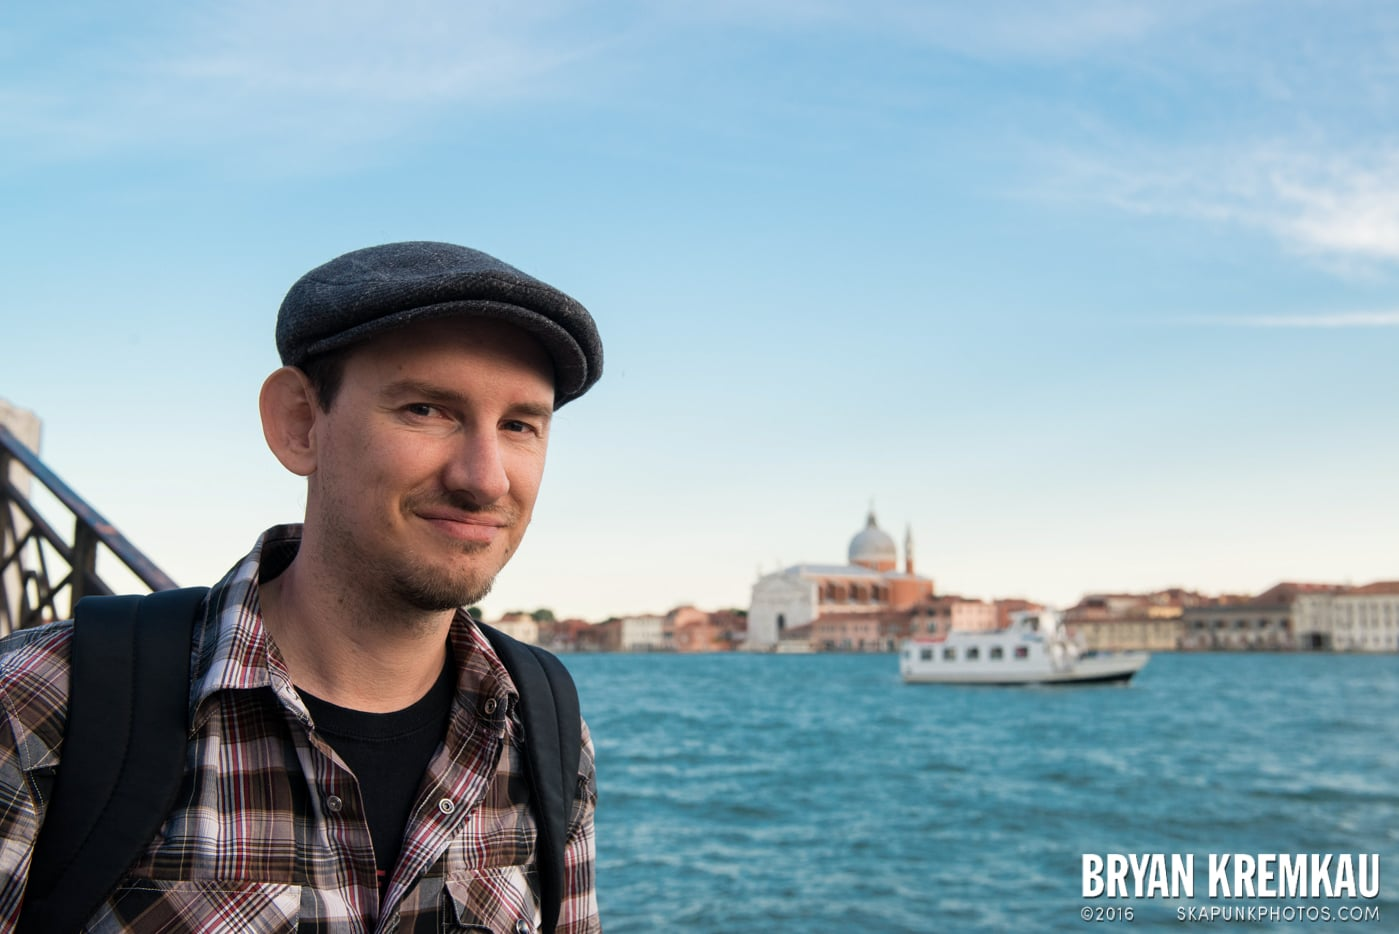 Italy Vacation - Day 4: Venice - 9.12.13 (16)